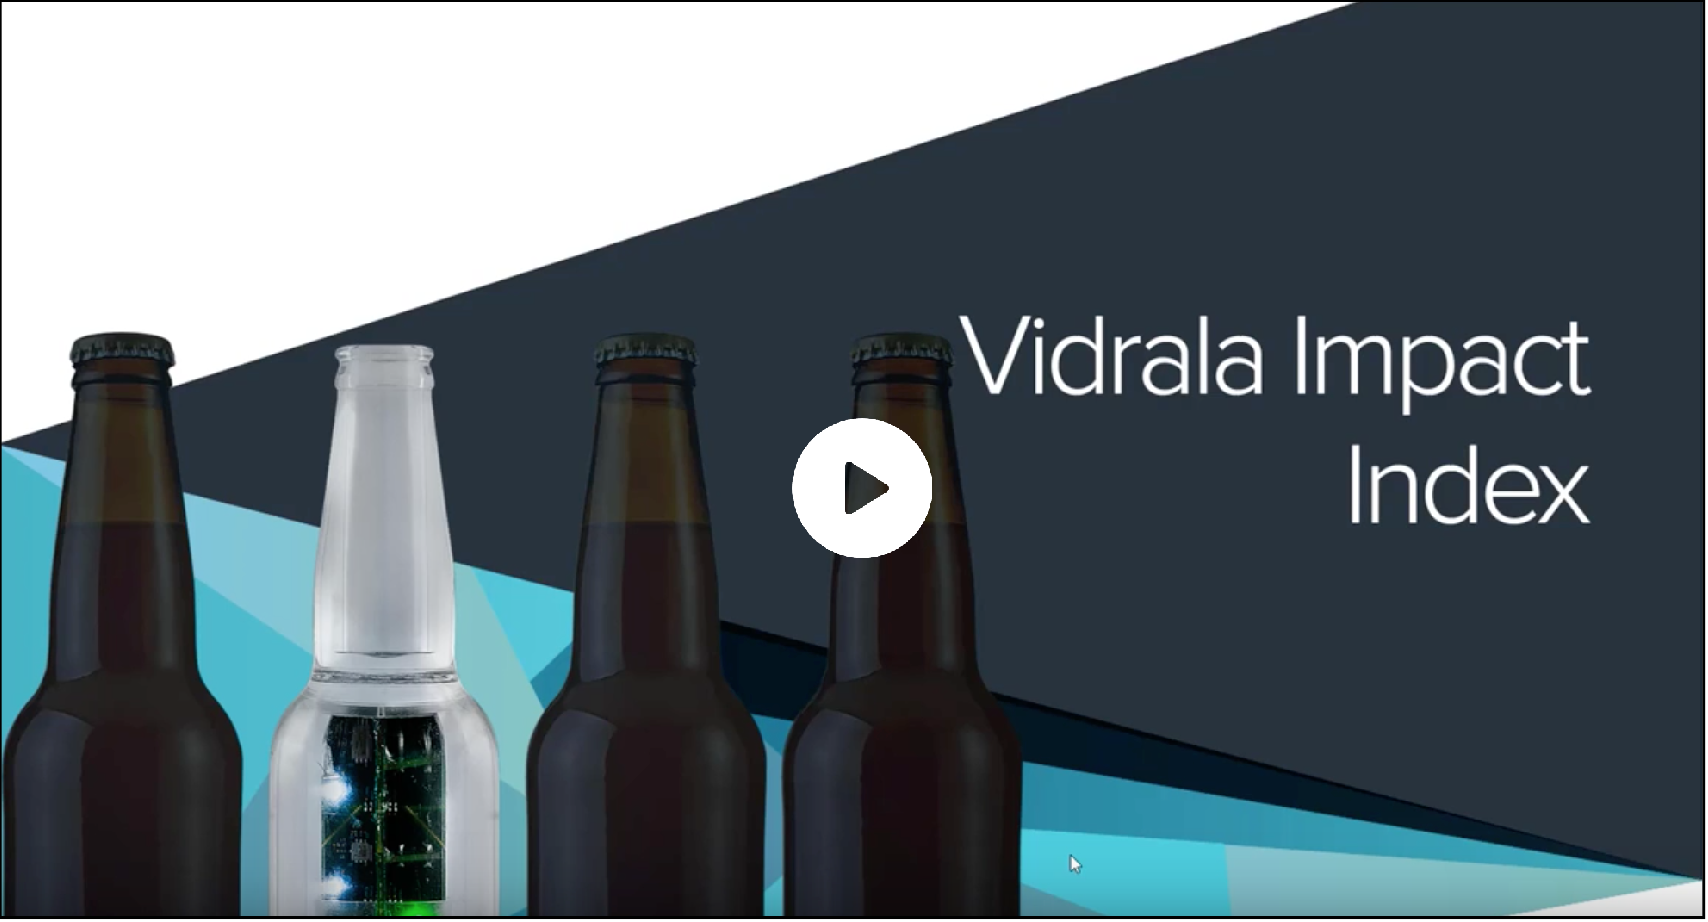 Video for Vidrala Impact Index